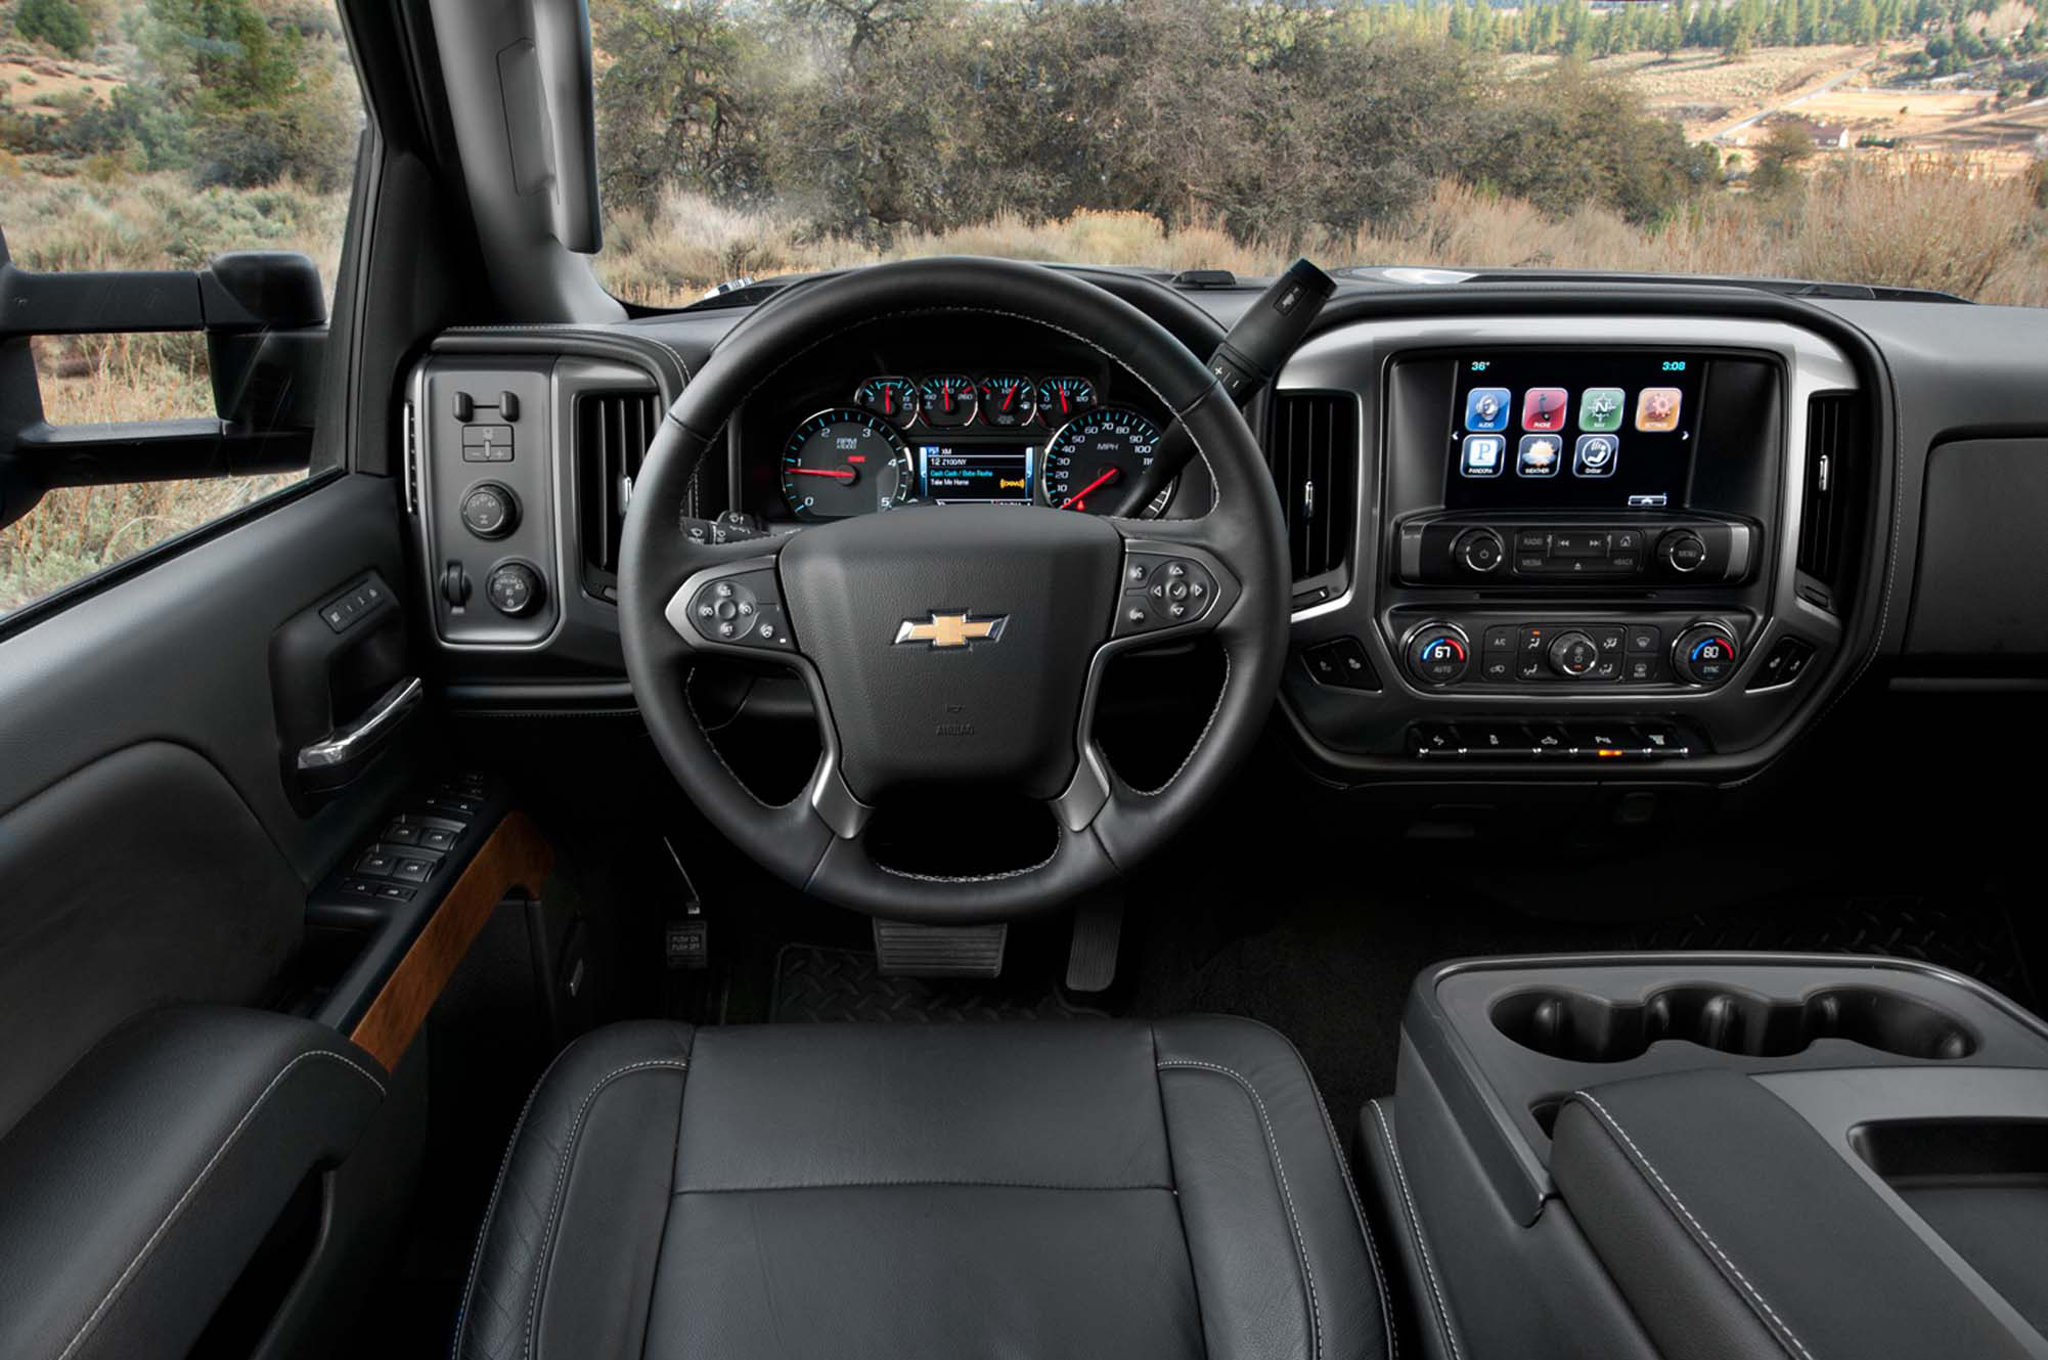 2015 Chevrolet Silverado HD Dashboard